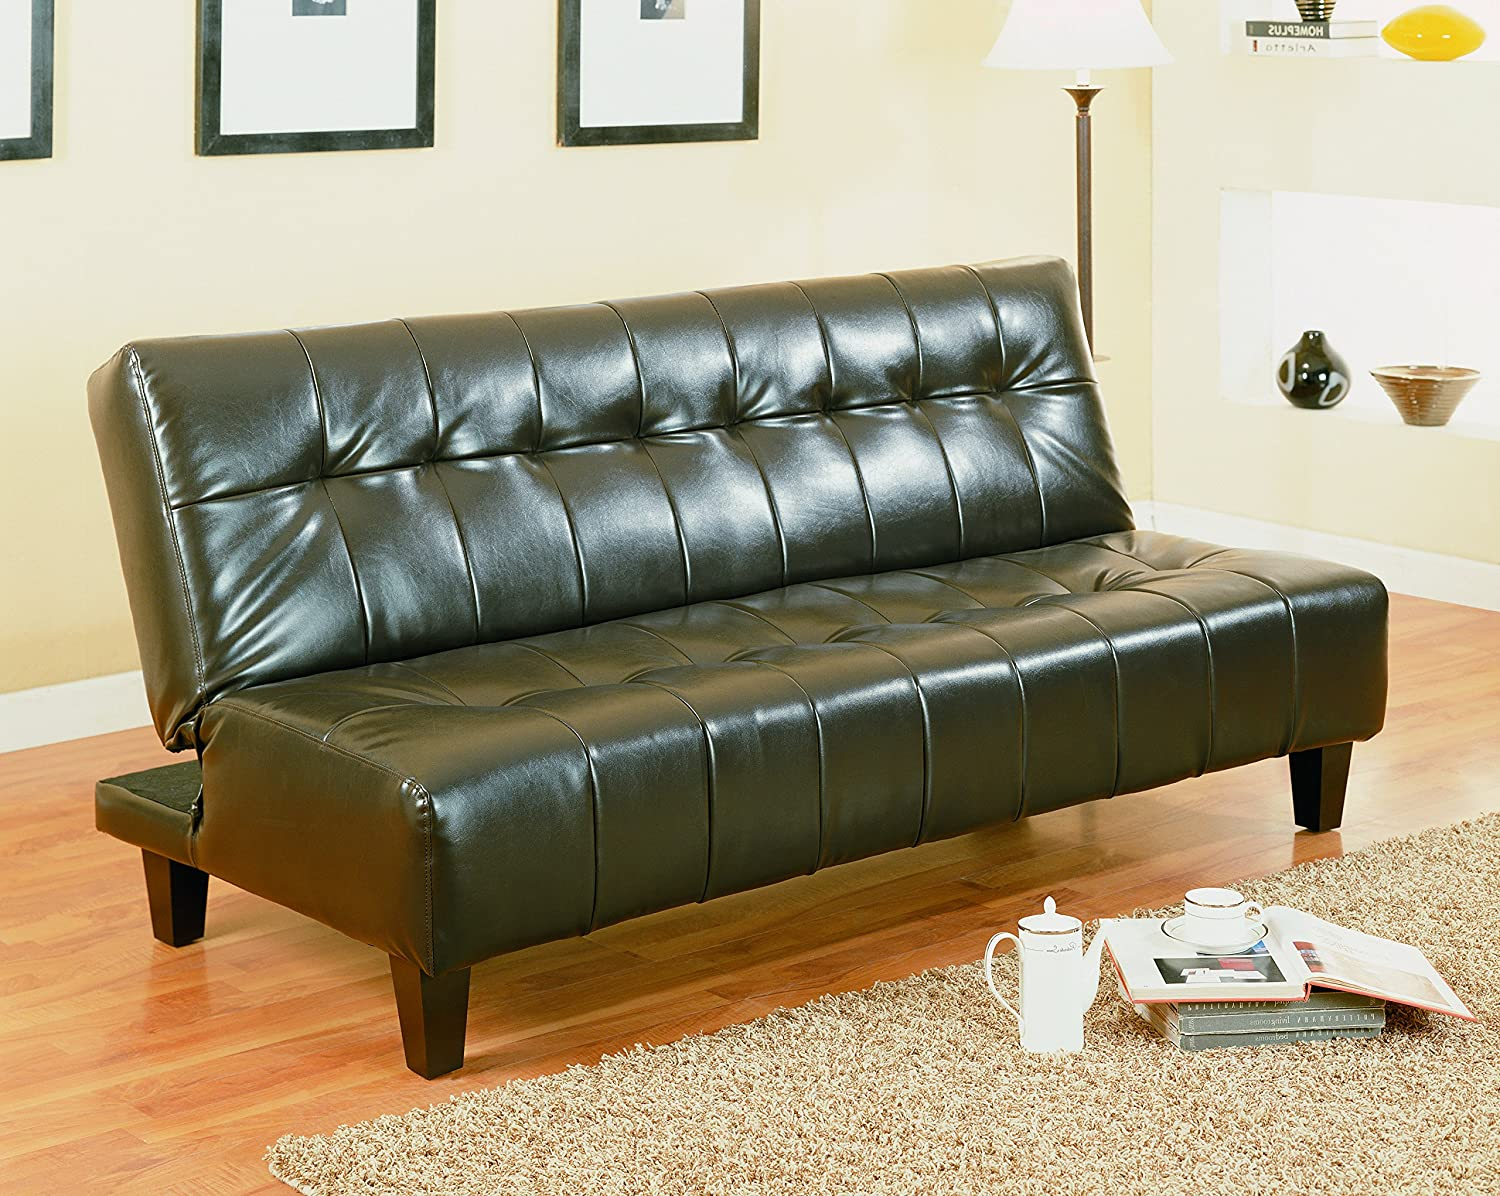 Amazon.com: Crown Mark Marco Adjustable Sofa, Espresso: Kitchen & Dining